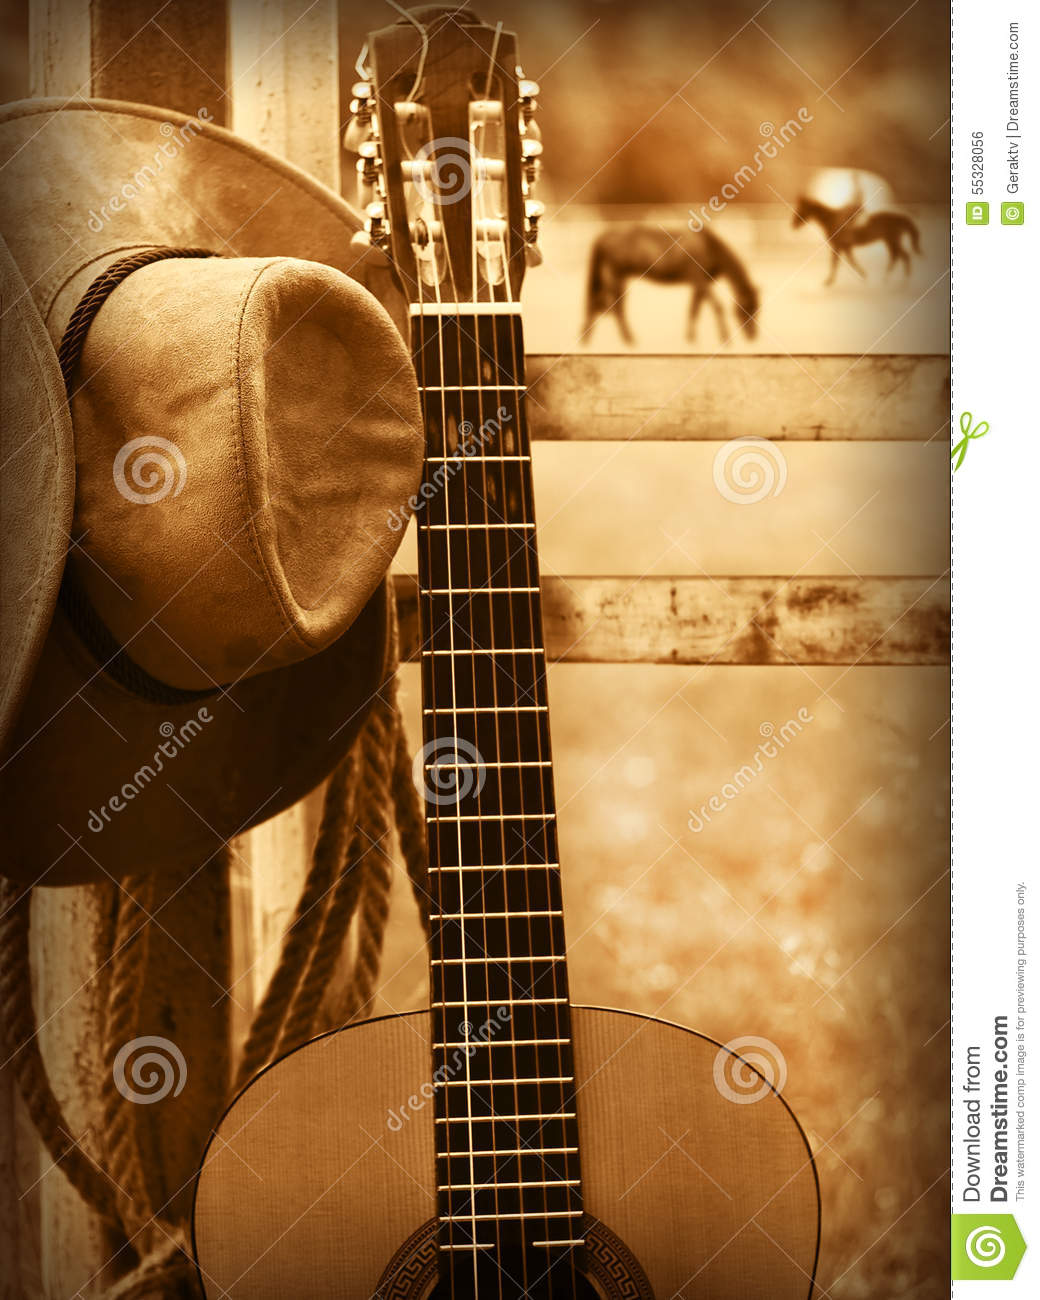 Country Music Wallpaper: Cowboy Hat And Guitar.American Music Background Stock